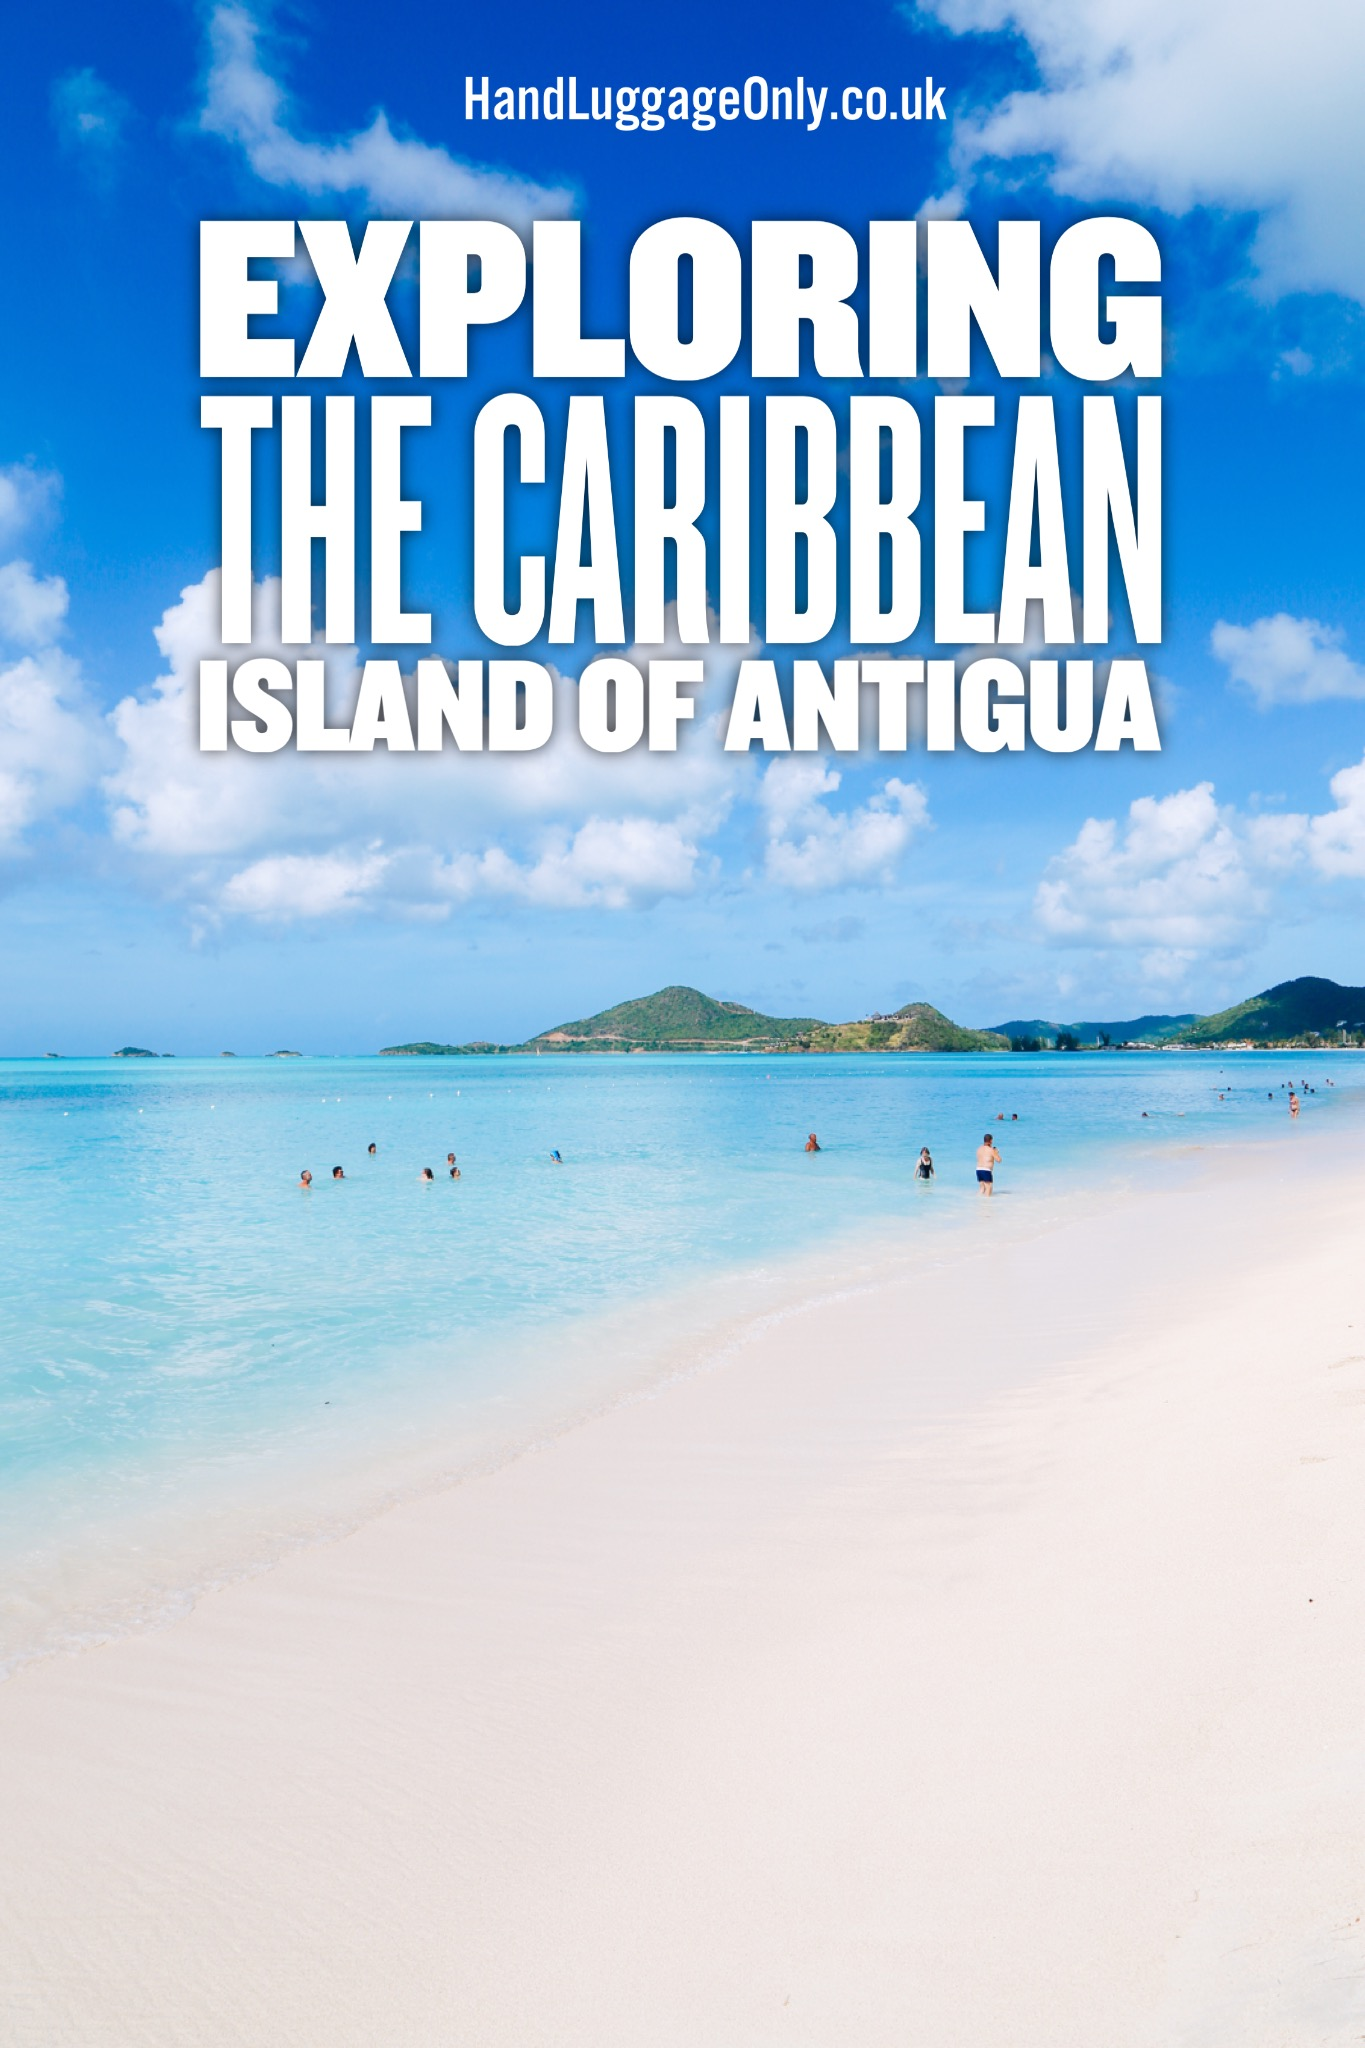 Exploring The Caribbean Island Of Antigua By Land - Part 1